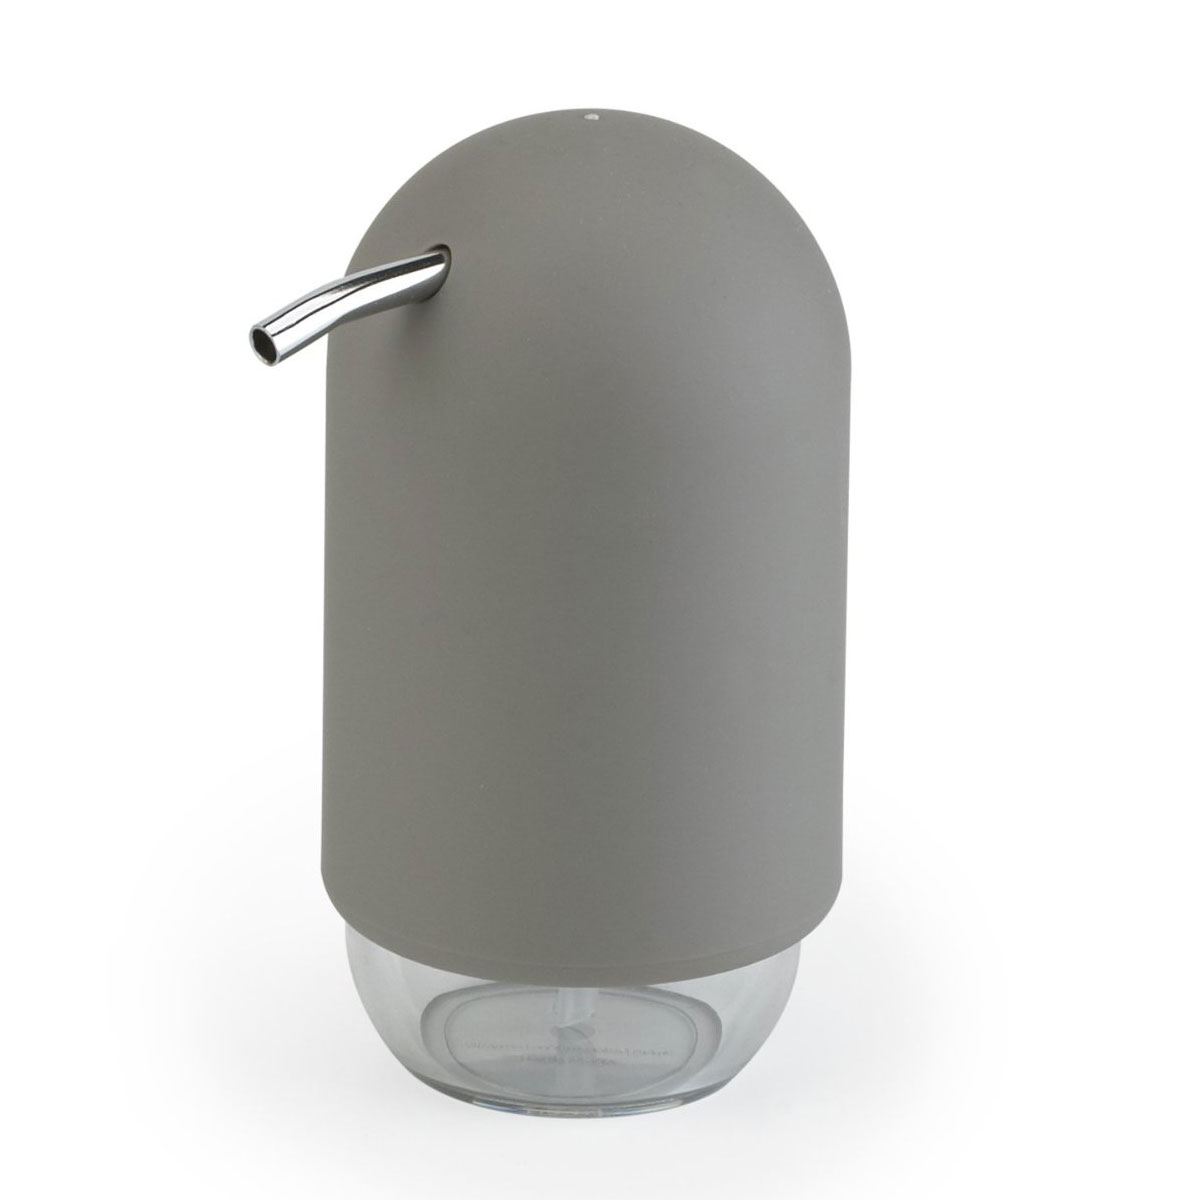 Stylish Soap Dispenser Umbra Touch Soap Pump The Green Head